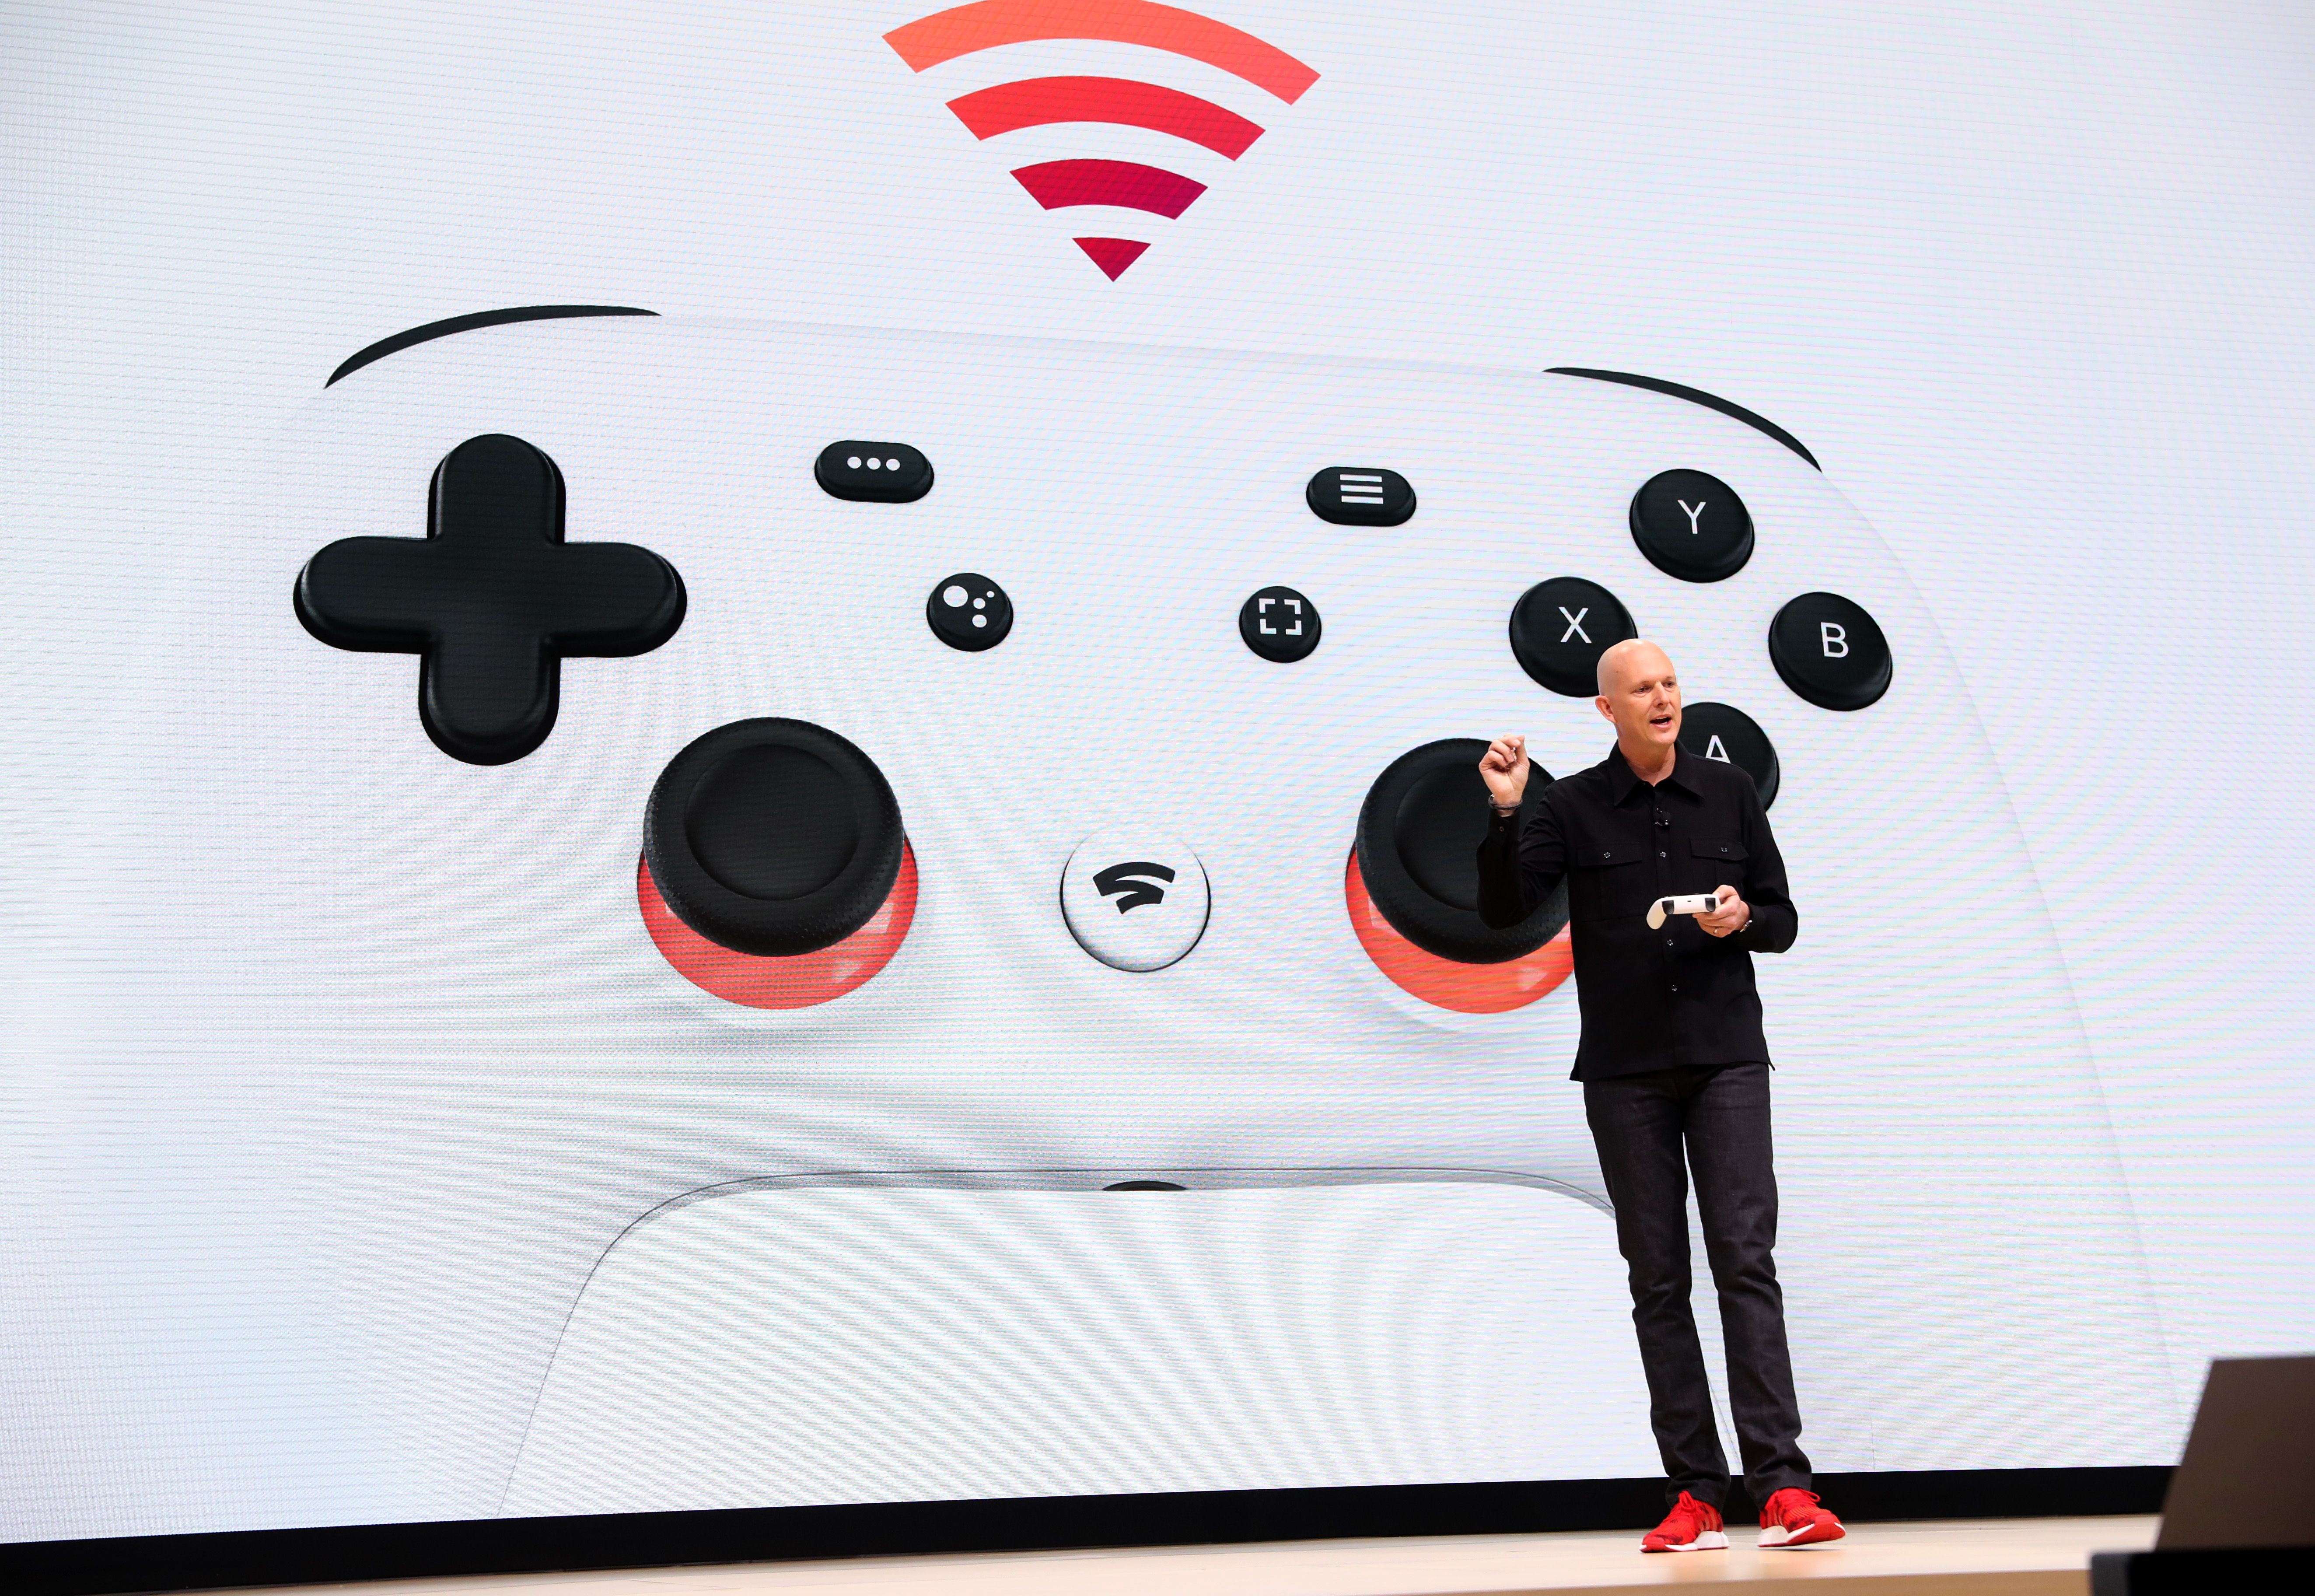 Google Stadia Launch Games Include 'Final Fantasy', 'Football Manager' And 'Assassin's Creed'